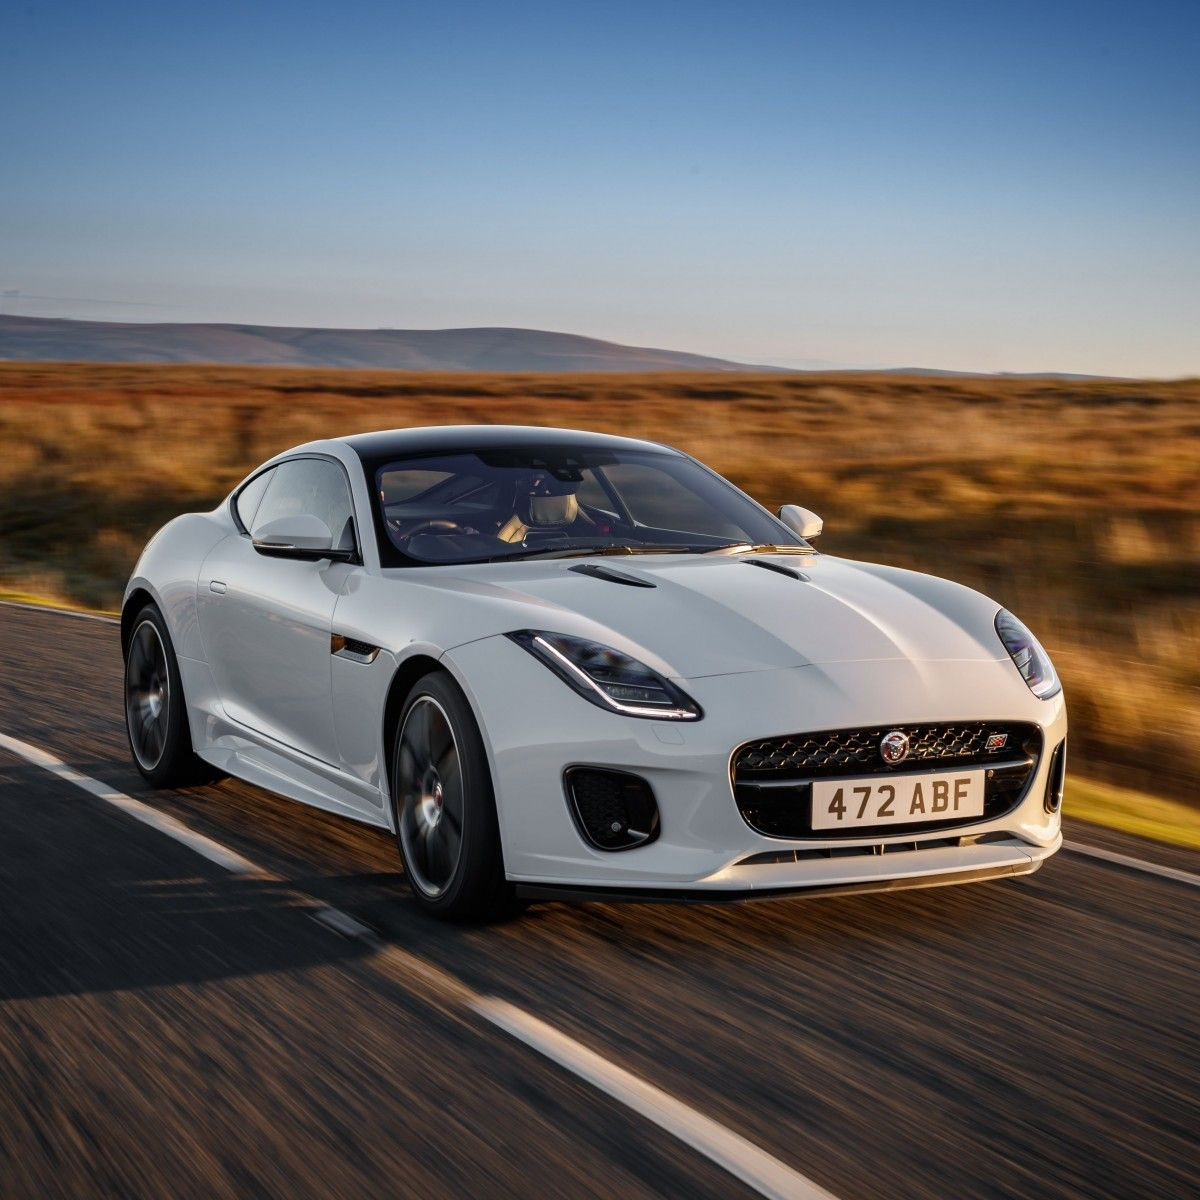 New Cars 2020 Awesome 33 Top Jaguar Car 2020 Model Research New Review Cars Review Cars In 2020 Jaguar F Type Jaguar Sport Jaguar Car